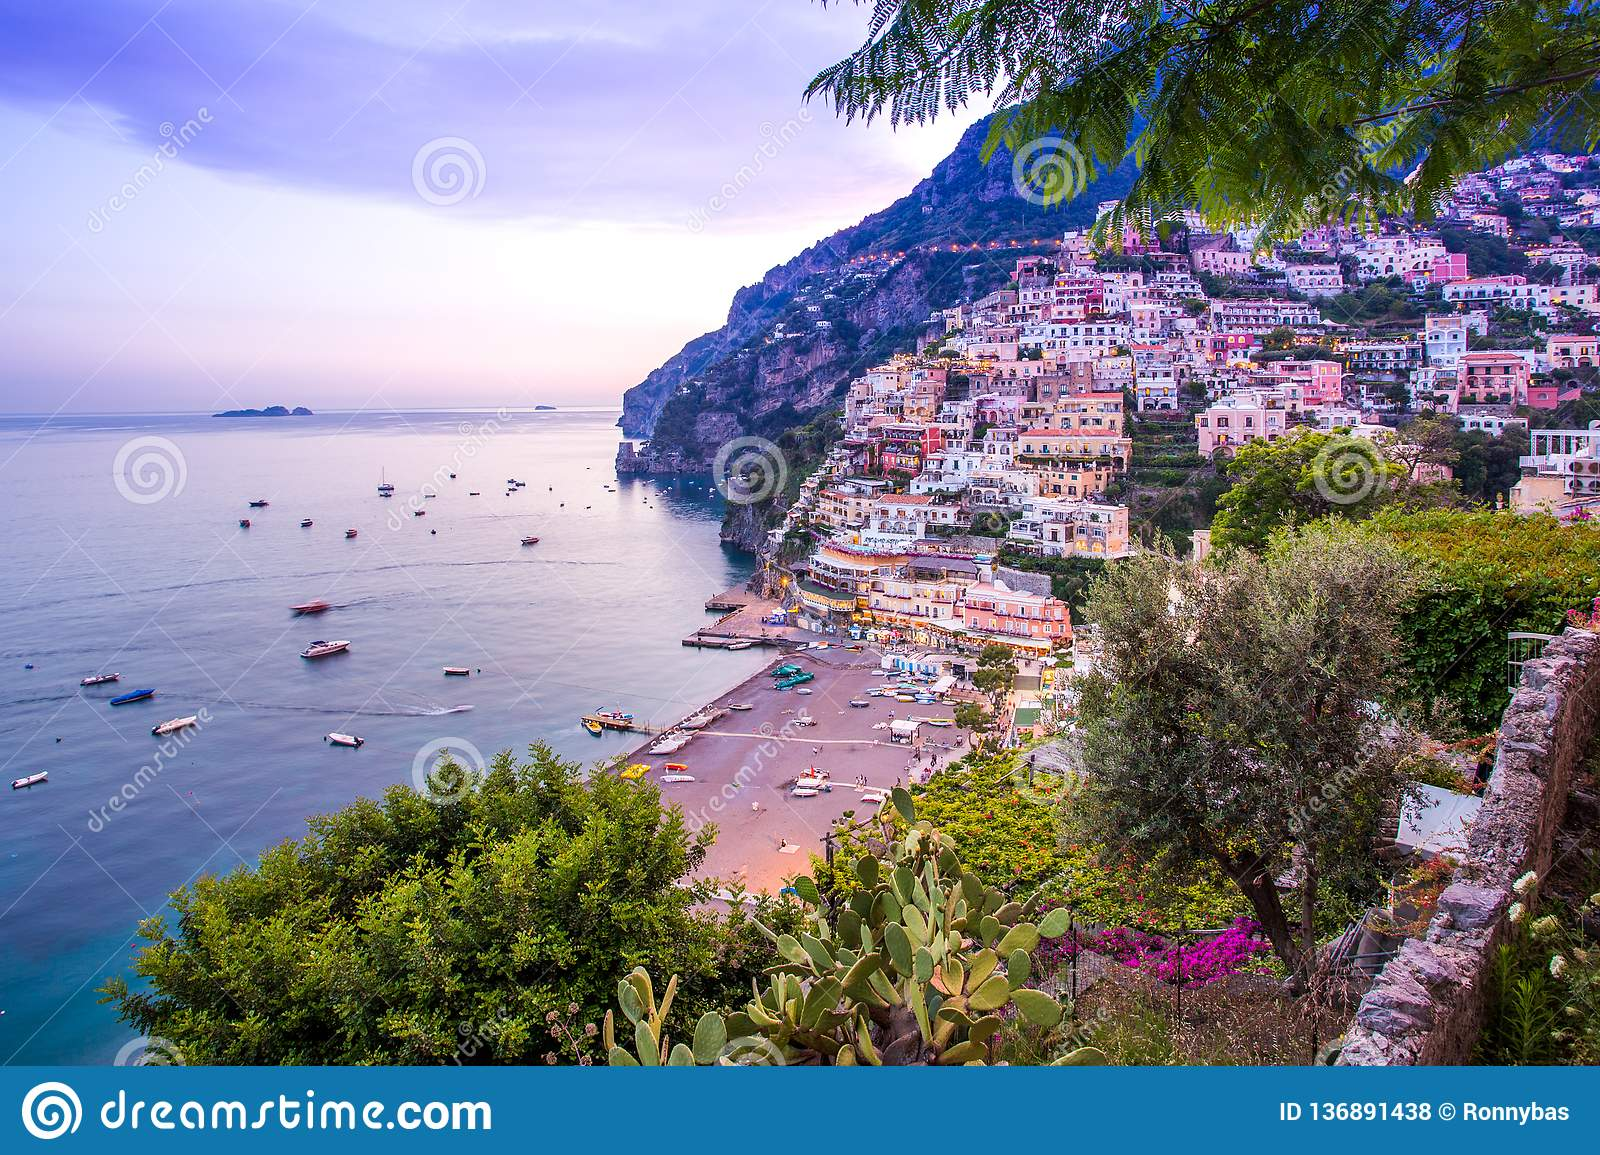 Positano Amalfi Coast Italy Scenic View Of Town And Beach